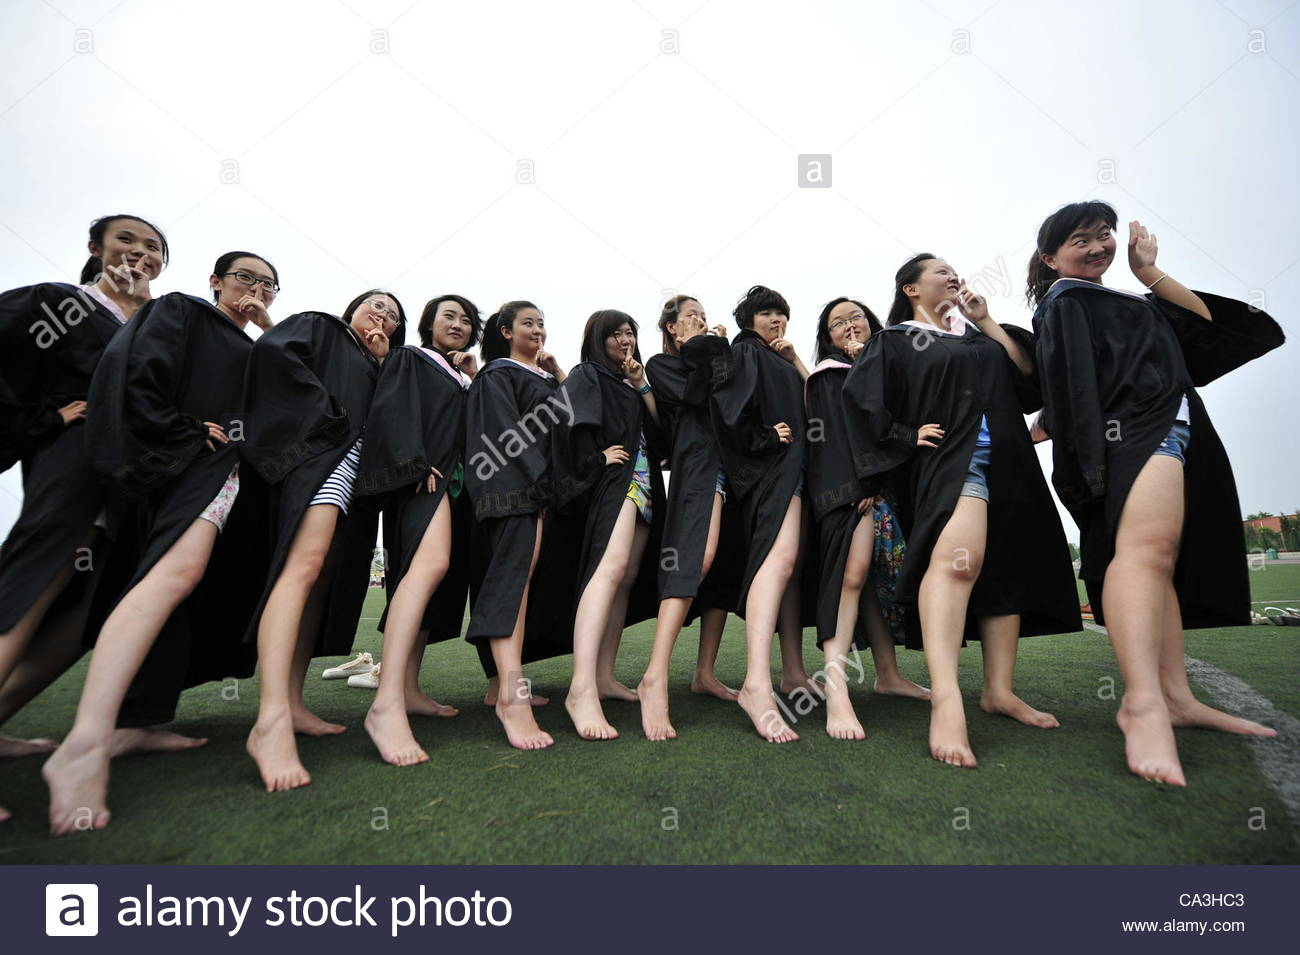 as-the-college-graduation-nears-many-funny-graduation-photos-appears-CA3HC3.jpg